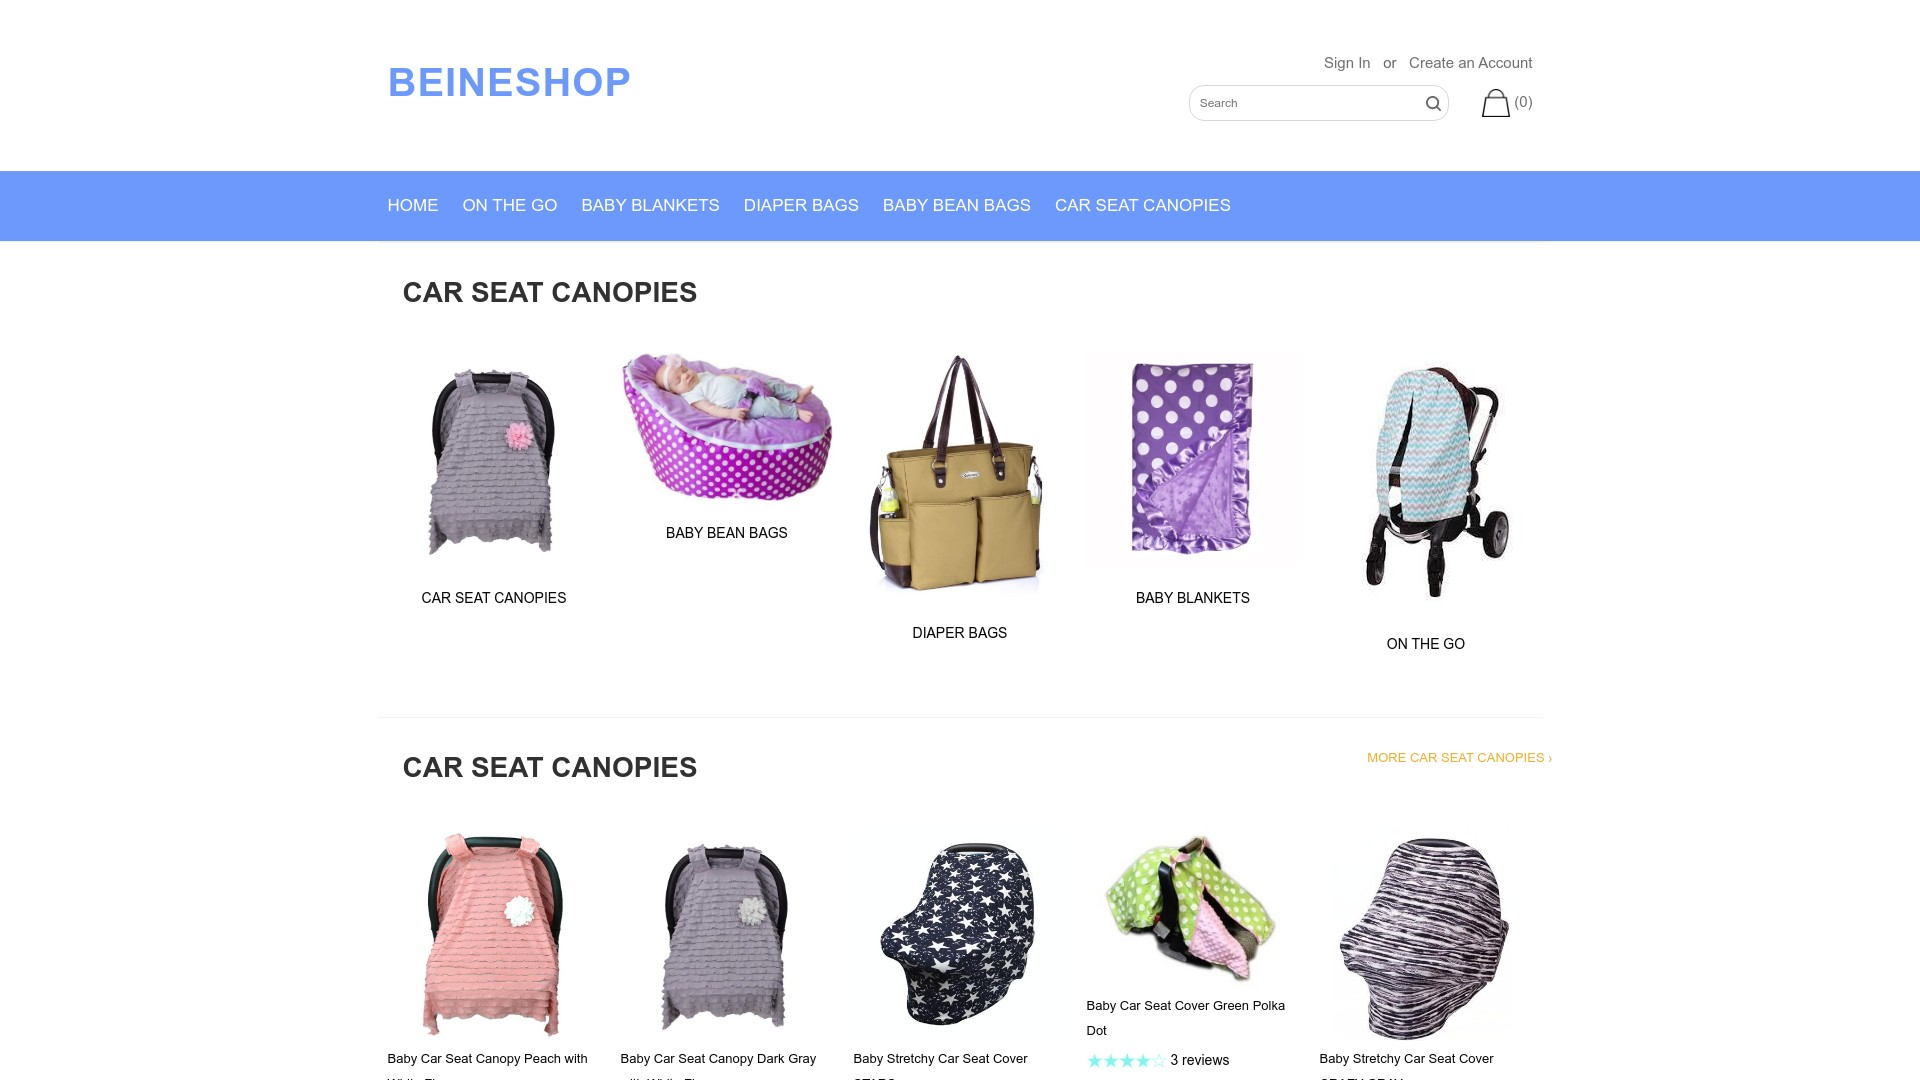 Is Beineshop a Scam? Review of the Online Store